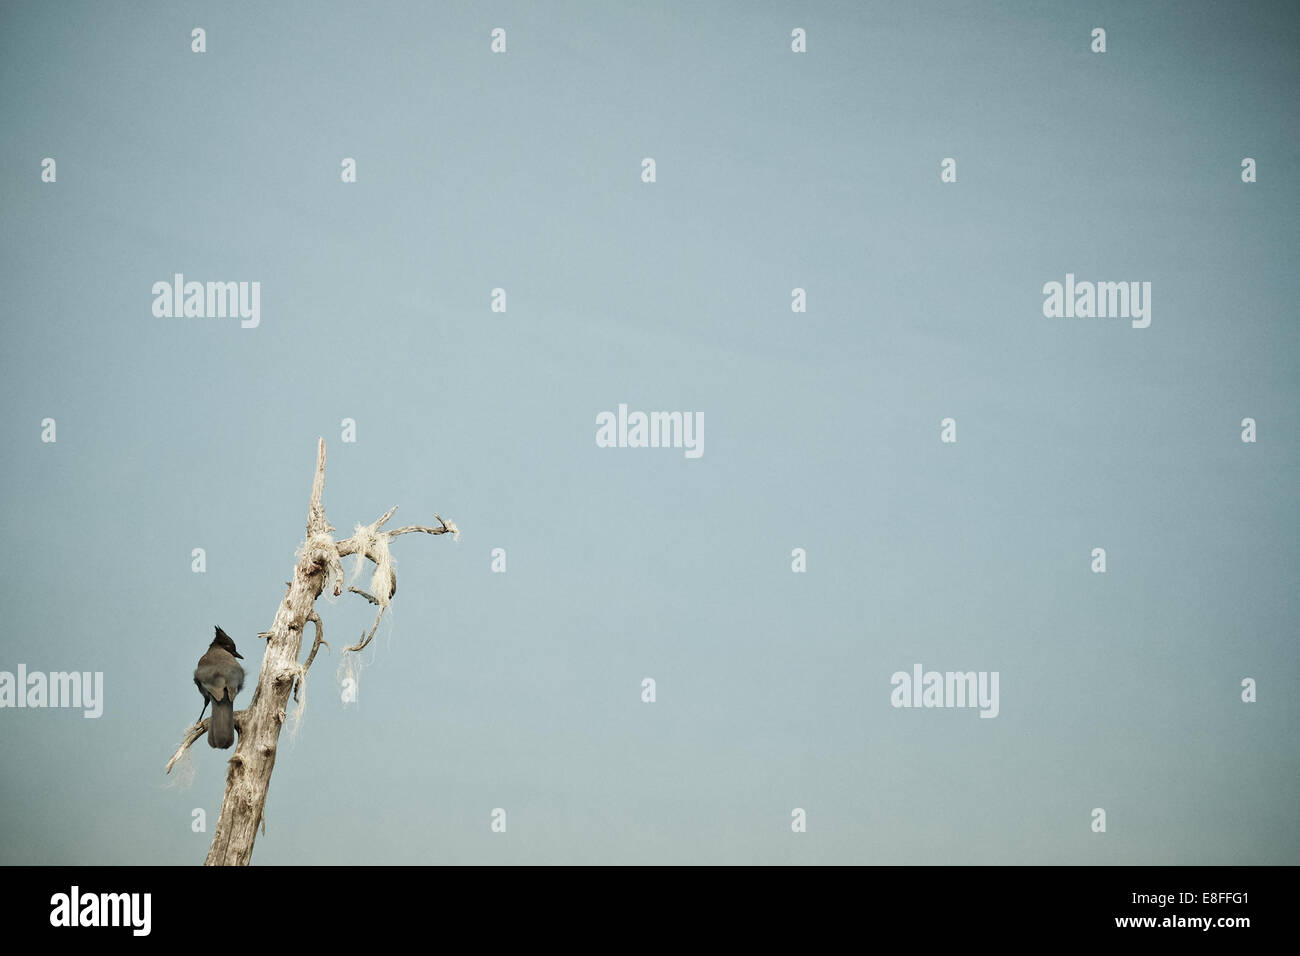 Bird on tree branch - Stock Image